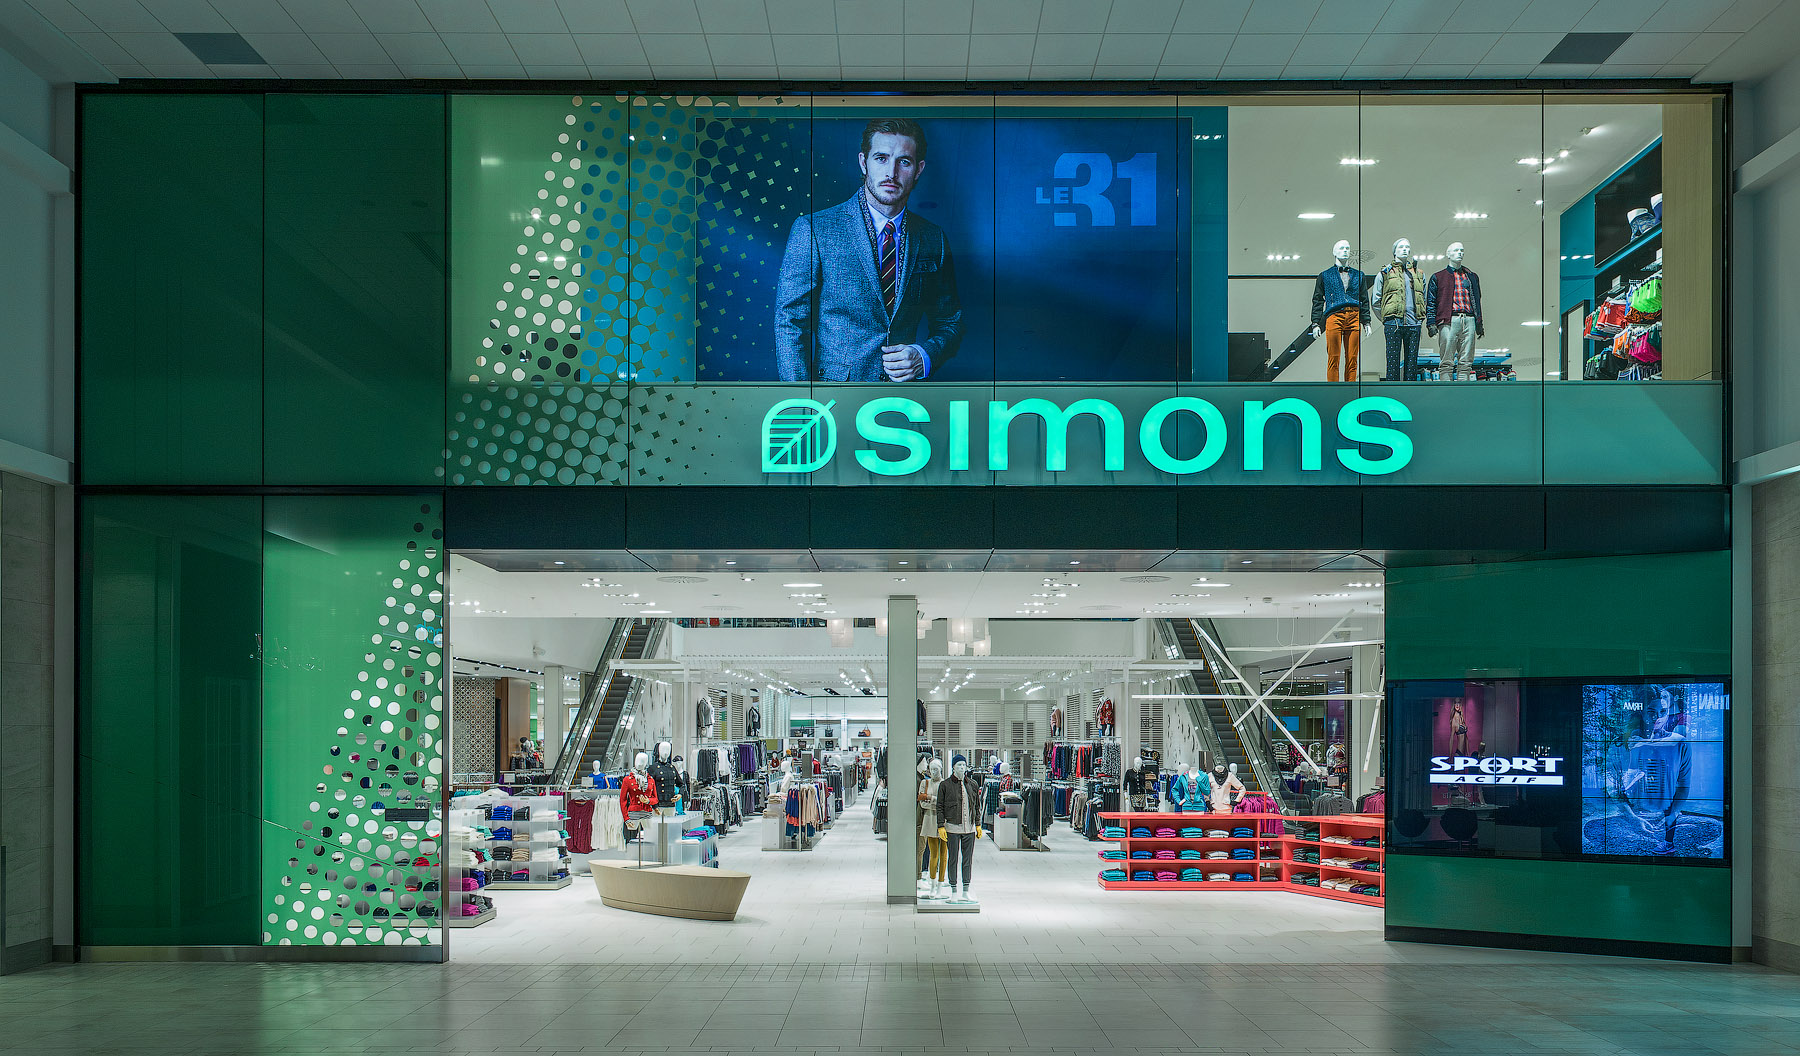 La Maison Simons store entrance with Simons sign and green walls